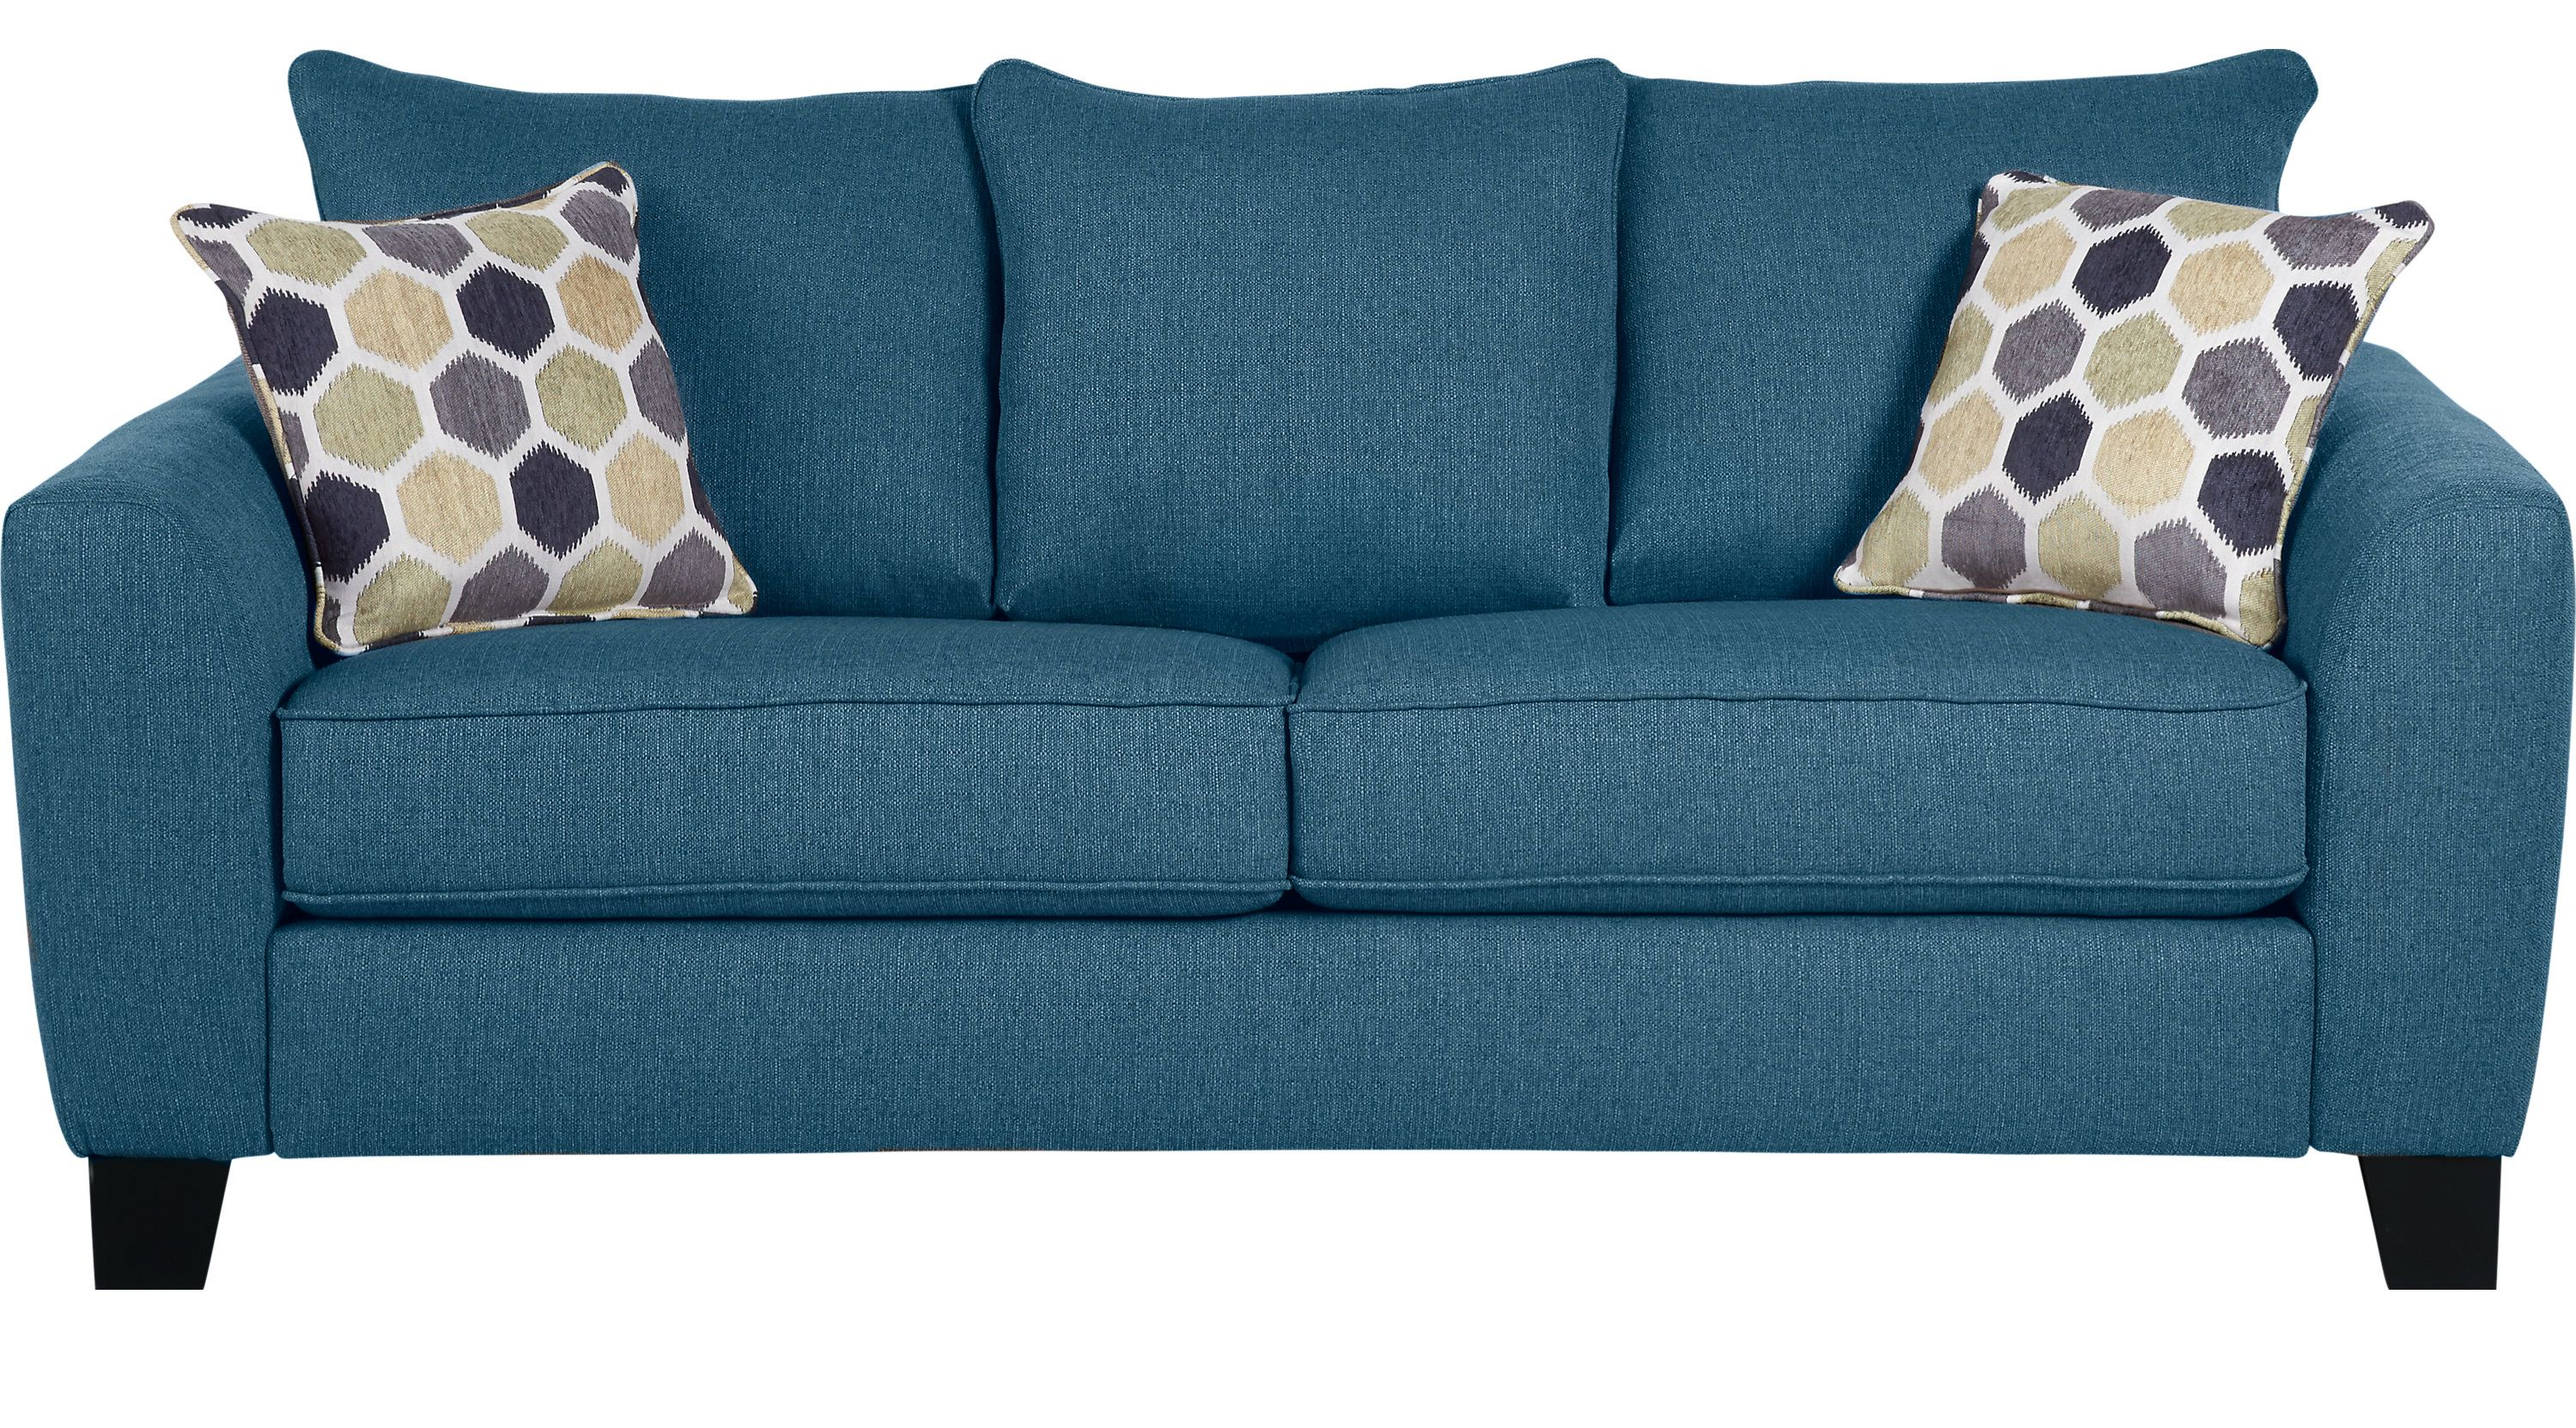 Sofas Rooms To Go Bonita Springs Blue Sofa 10141618 Blue